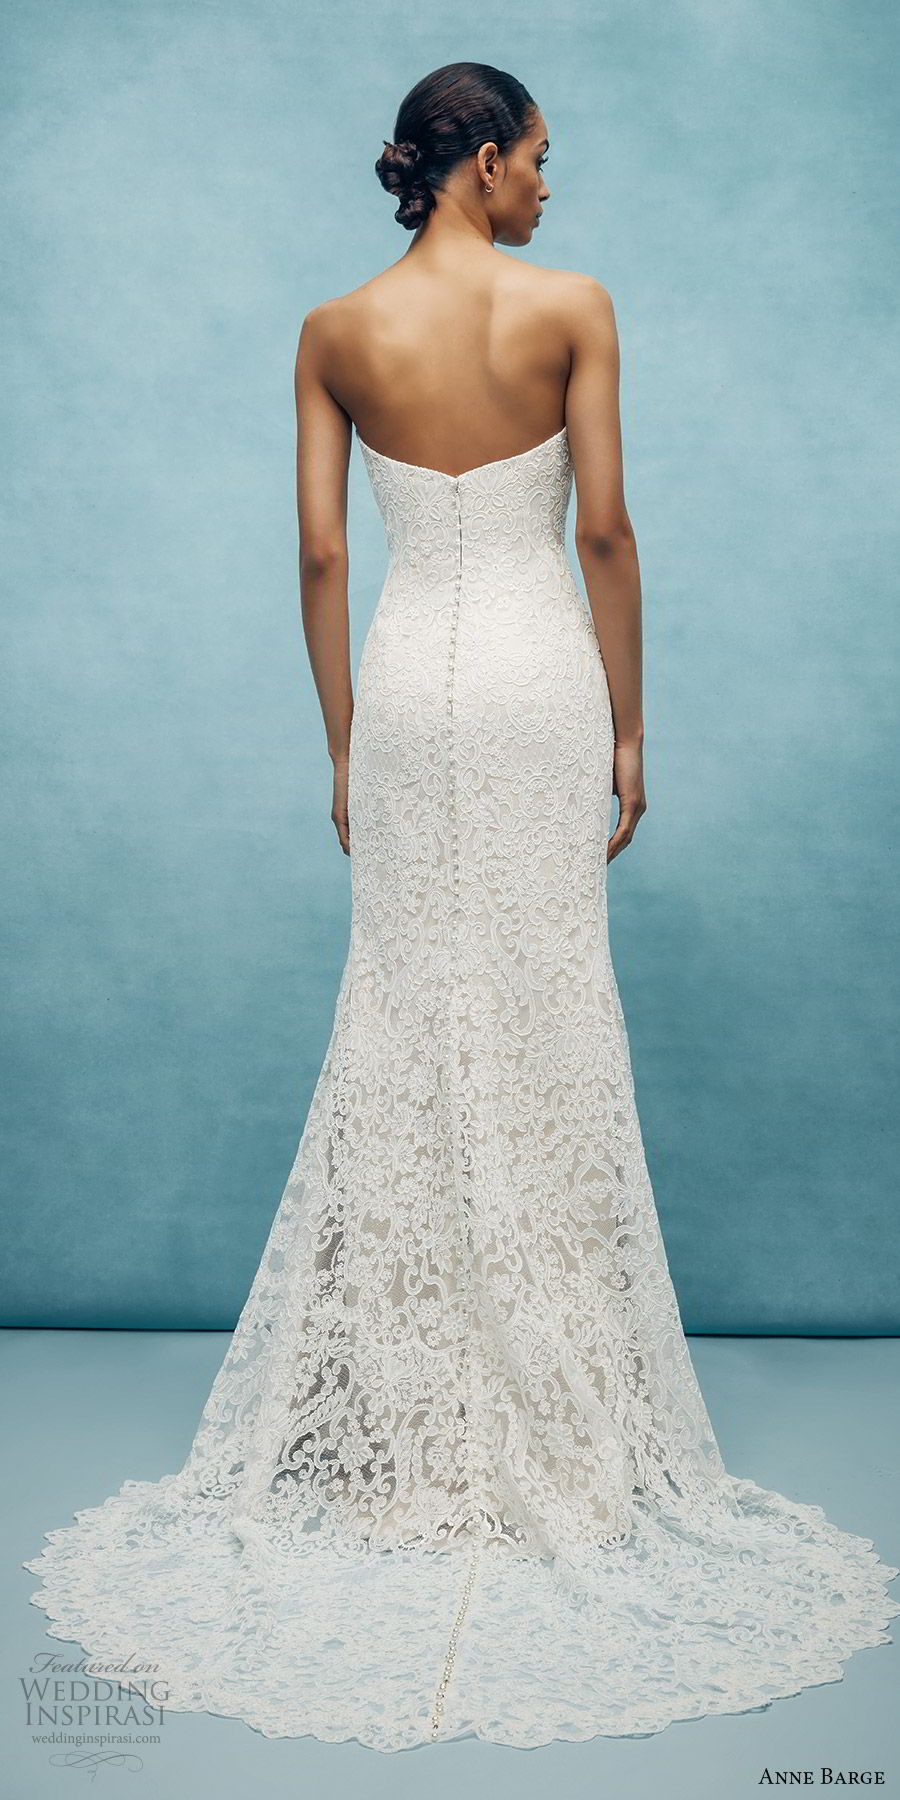 anne barge spring 2020 bridal strapless straight across fully embellished lace sheath wedding dress (3) elegant chapel train bv